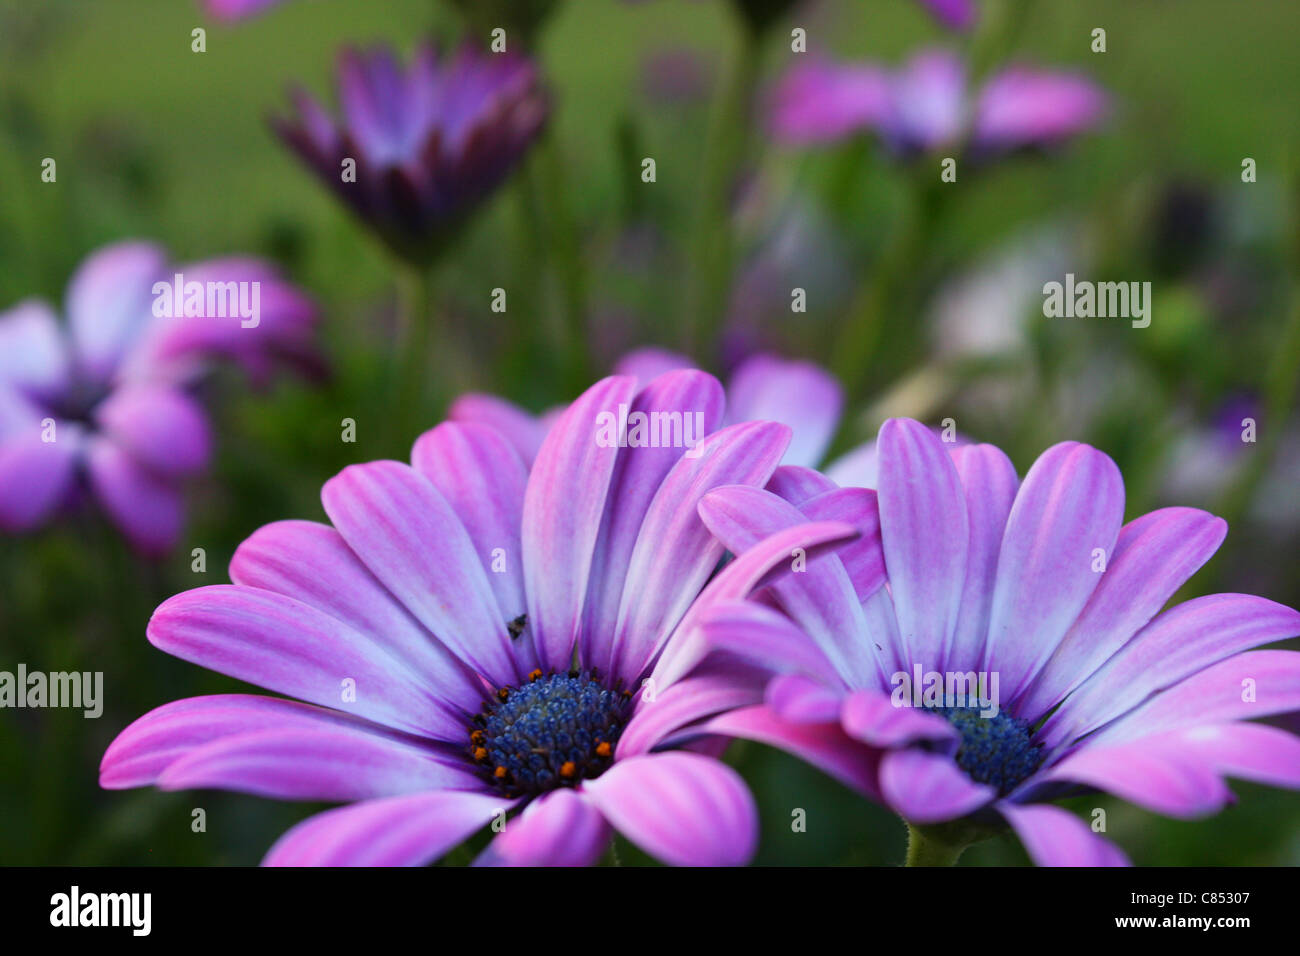 Purple daisy flowers stock photos purple daisy flowers stock purple daisy flowers stock image izmirmasajfo